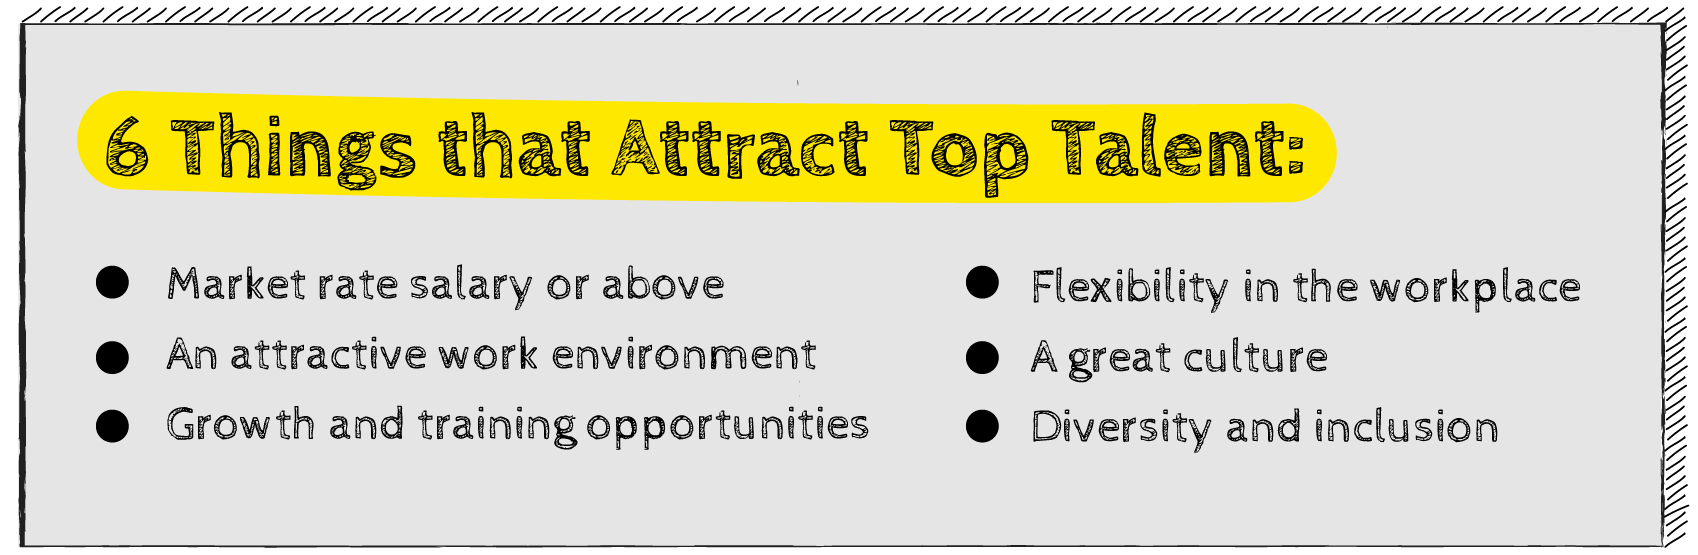 6 Things that Attract Top Talent